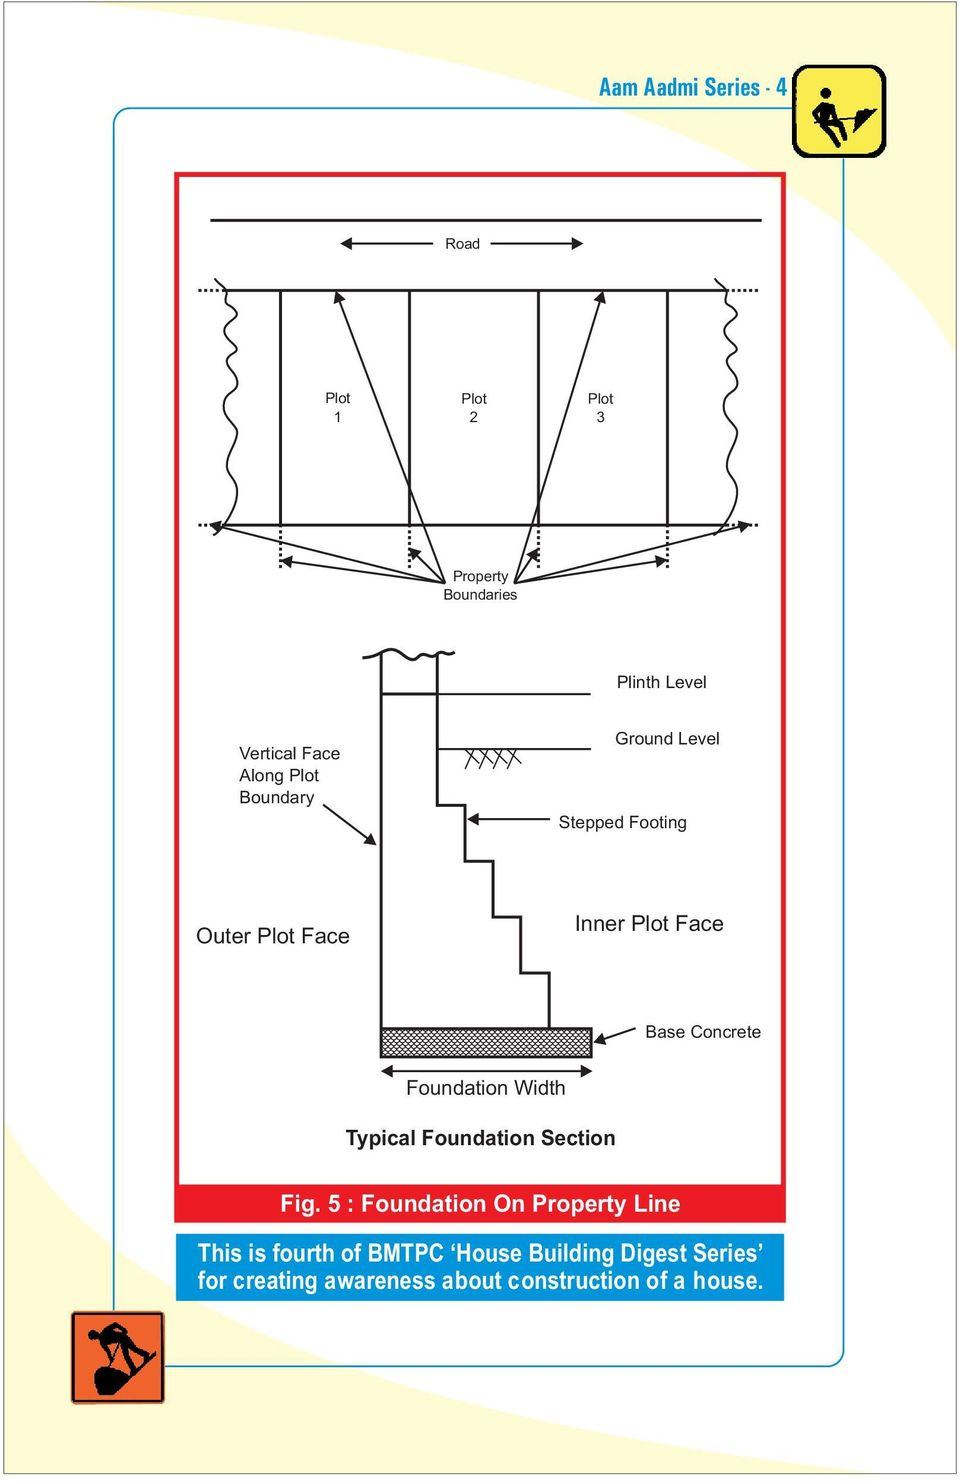 Foundation Width Typical Foundation Section Fig.